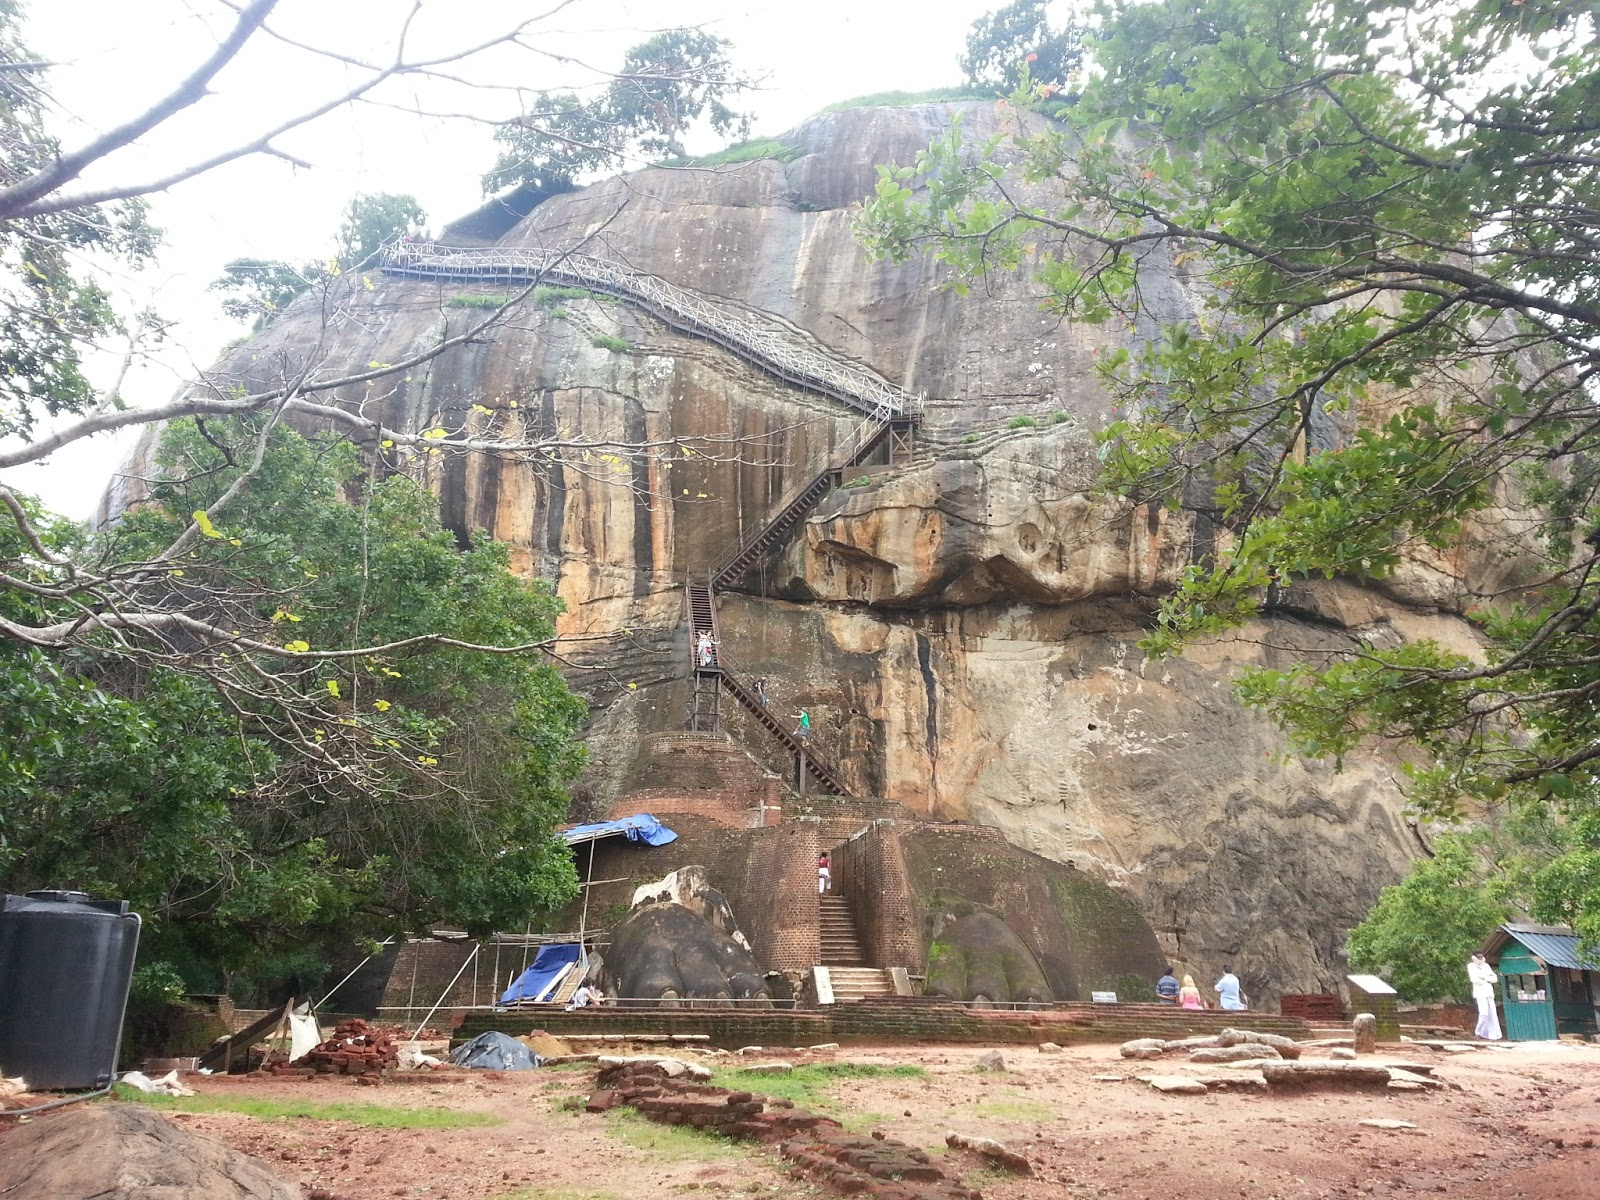 essay on sigiriya My country is sri lanka join essayworld today to view this entire essay and over 50,000 other term papers buddhist revival in the days gone by.